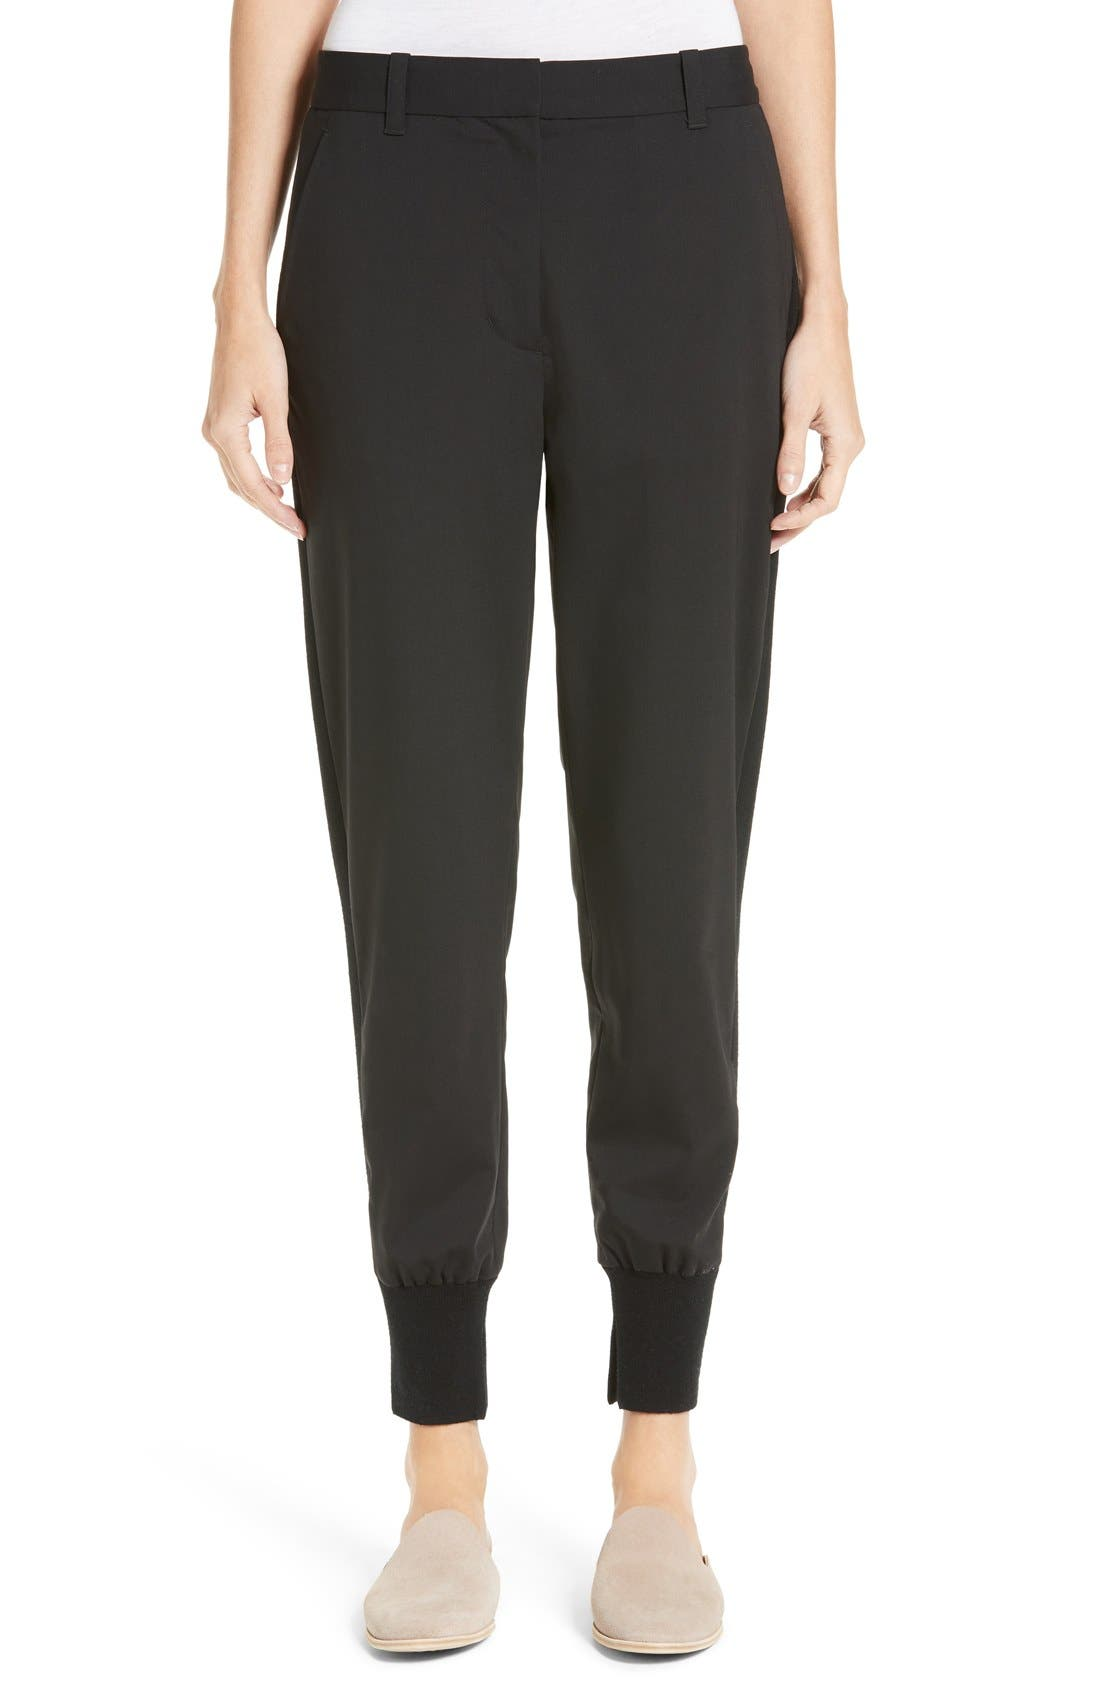 3.1 Phillip Lim Stretch Wool Joggers